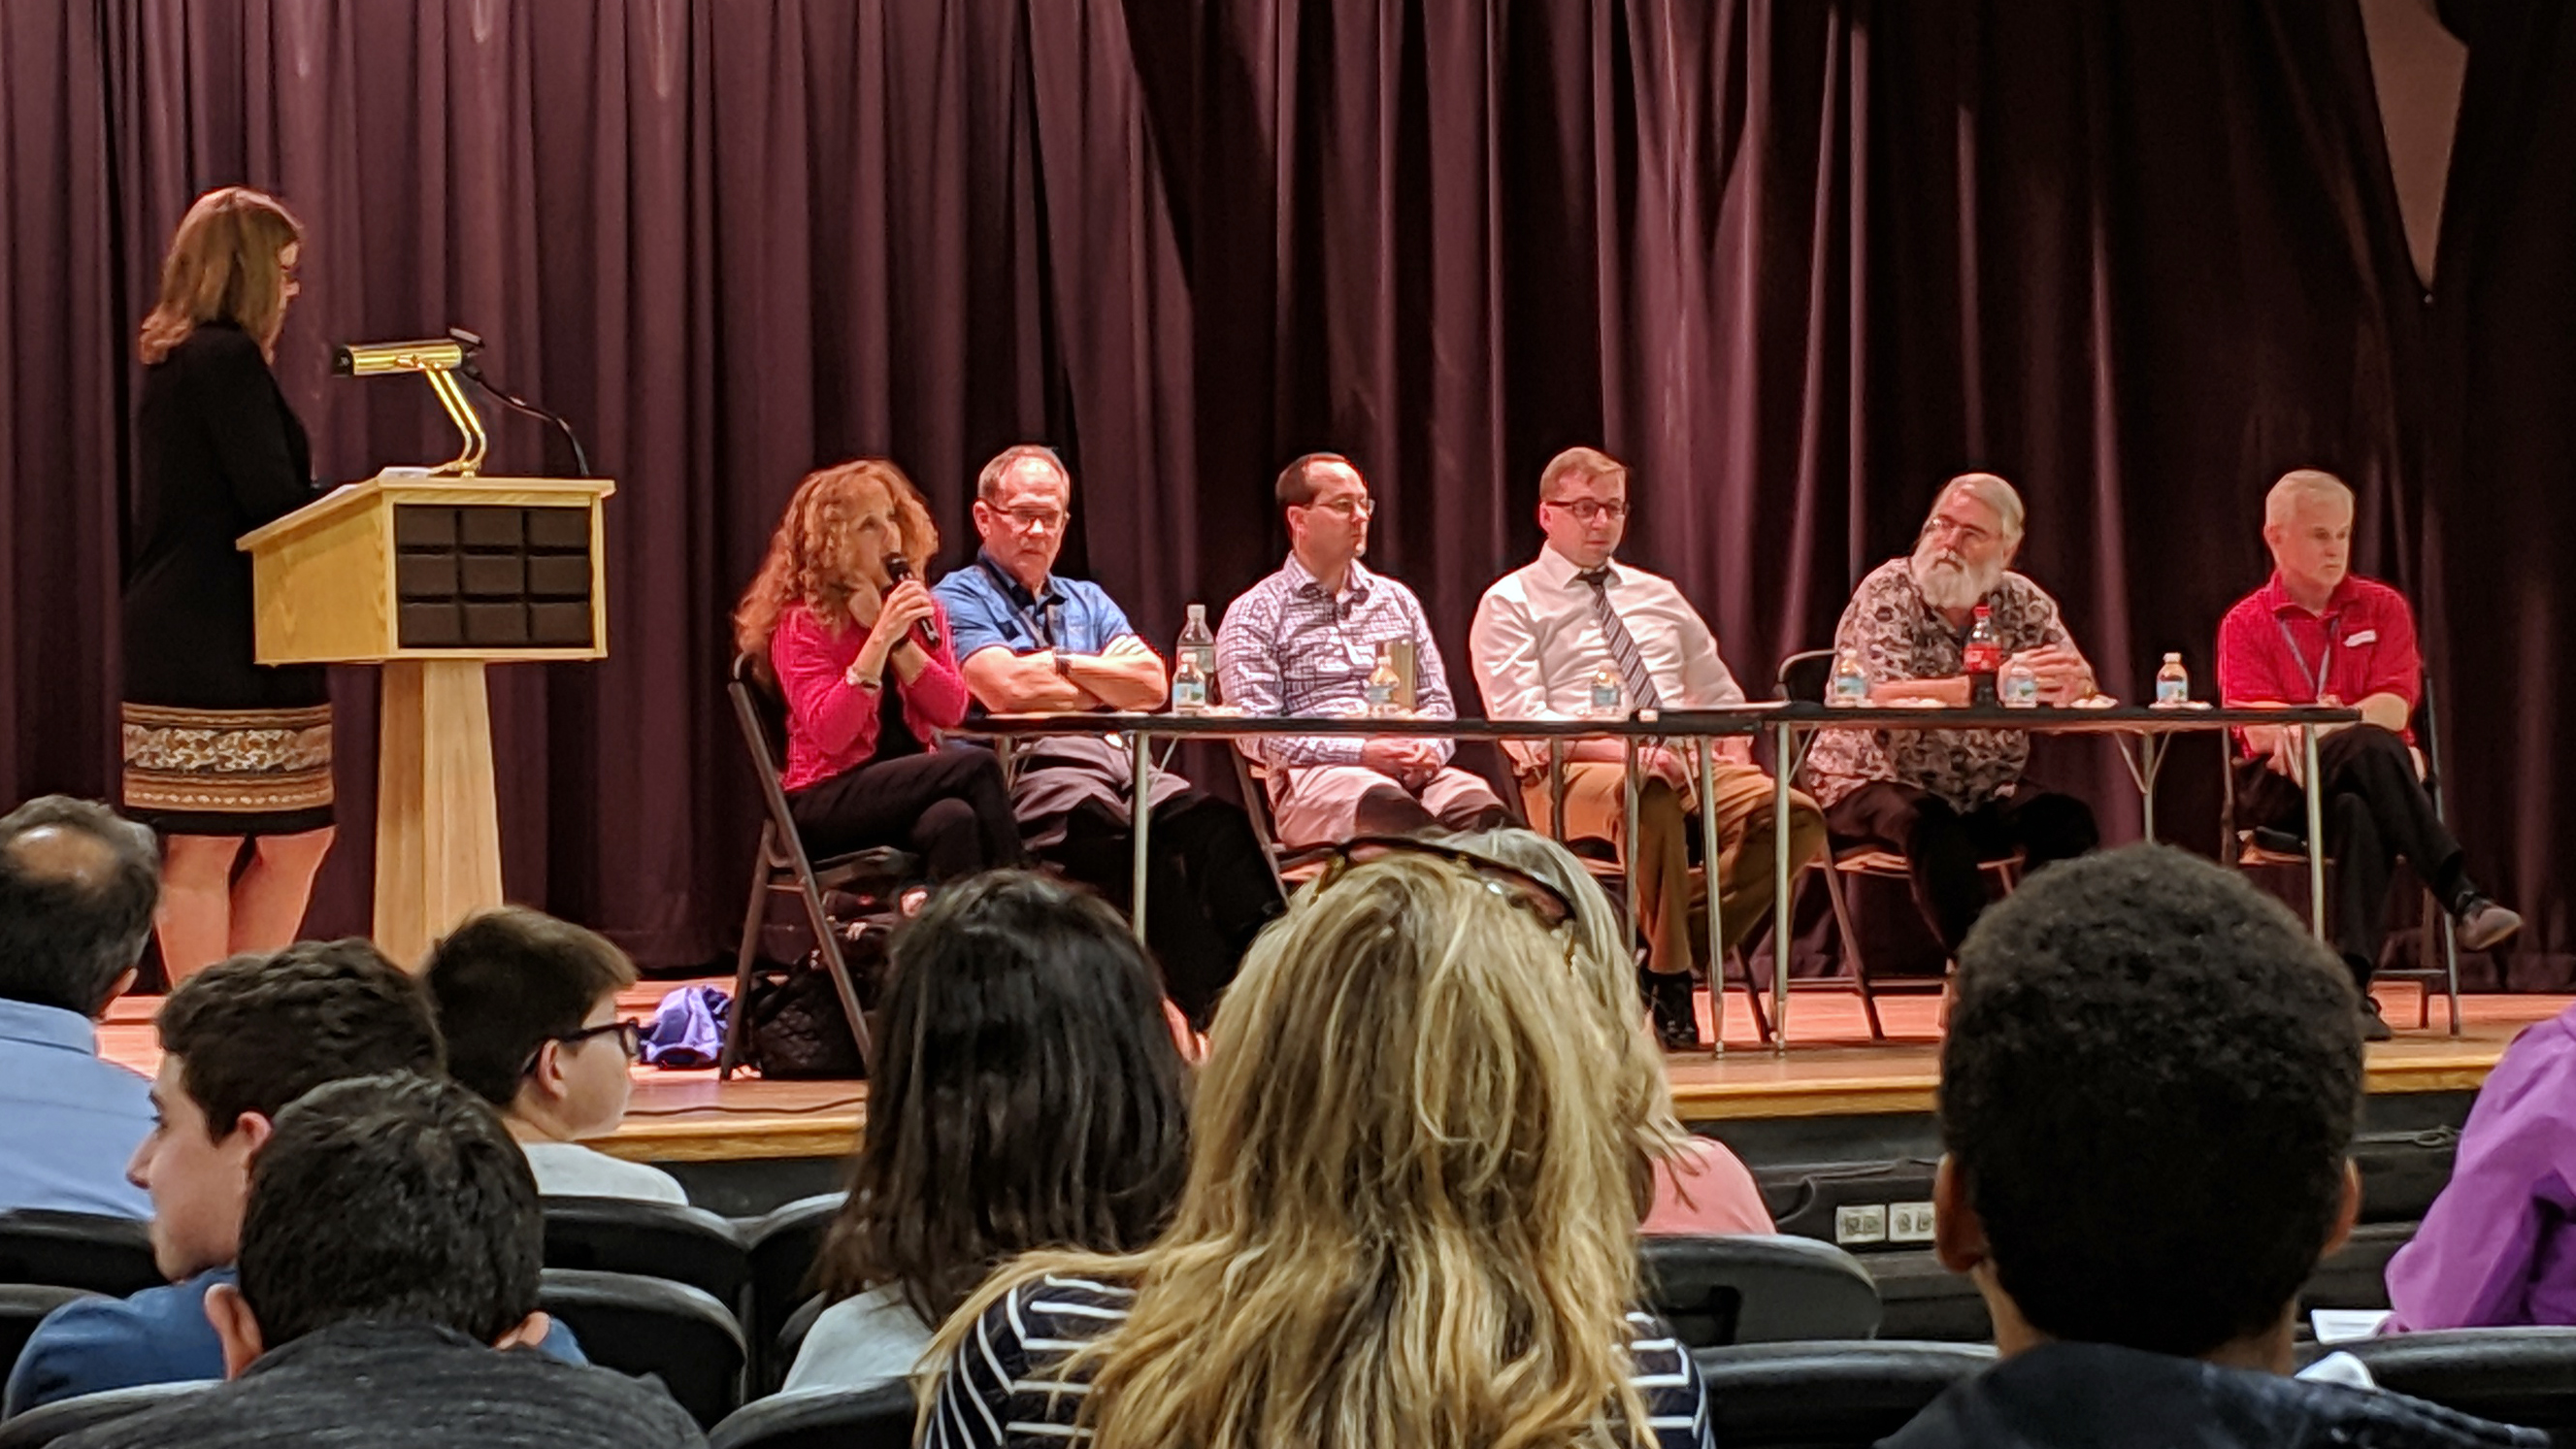 Representatives from Broward County Public Schools, the University of Florida, Florida Atlantic University, and EMF Math address questions from Broward's EMF Math students and their parents.